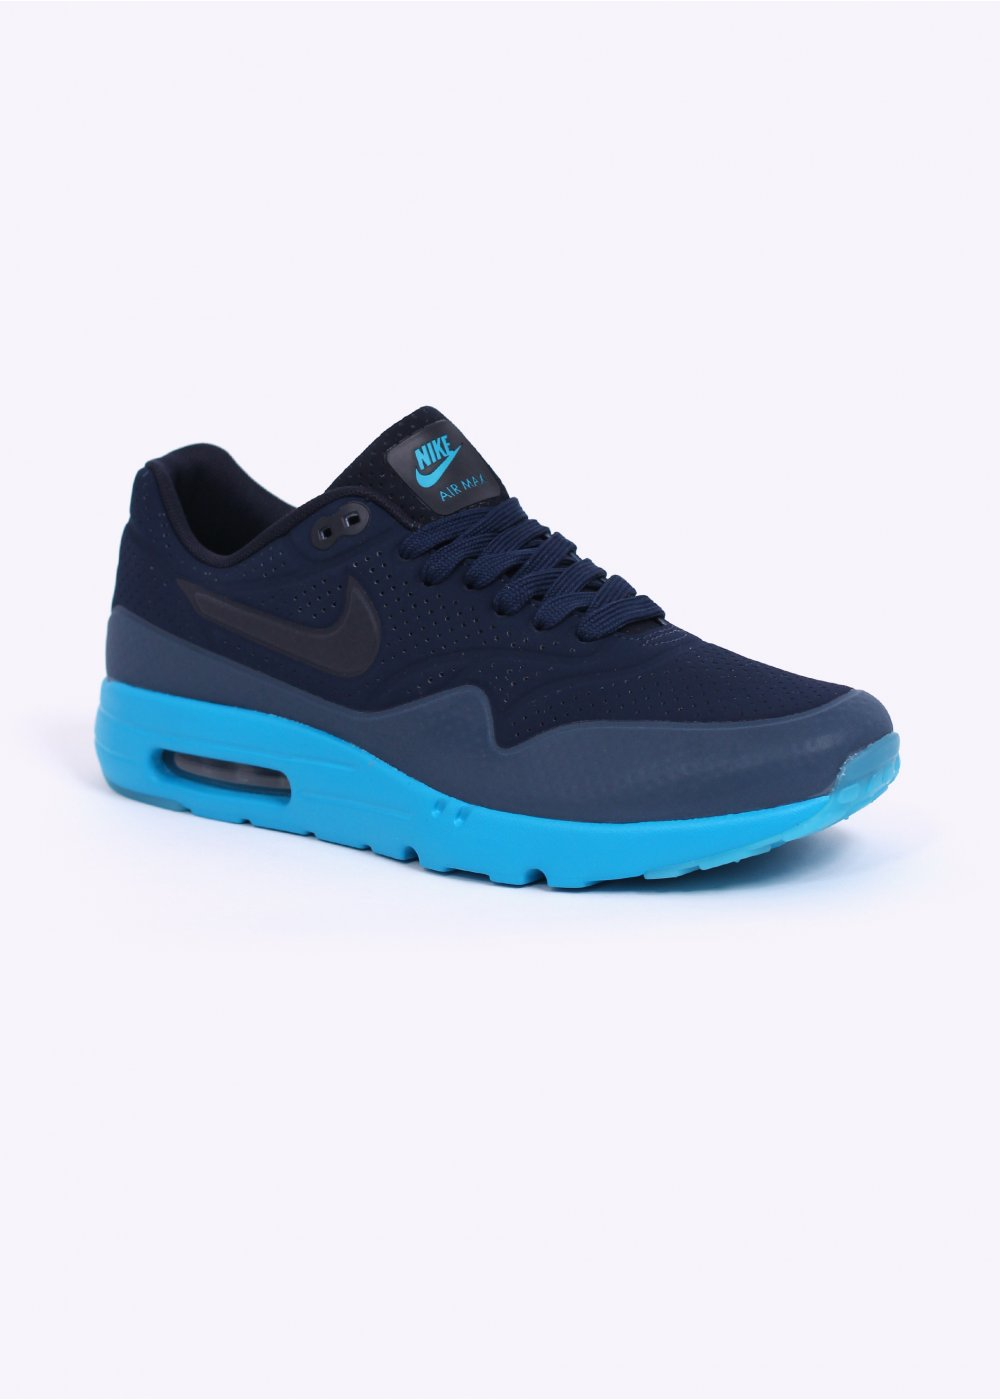 Nike Footwear Air Max 1 Ultra Moire Trainers Midnight Navy Obsidian